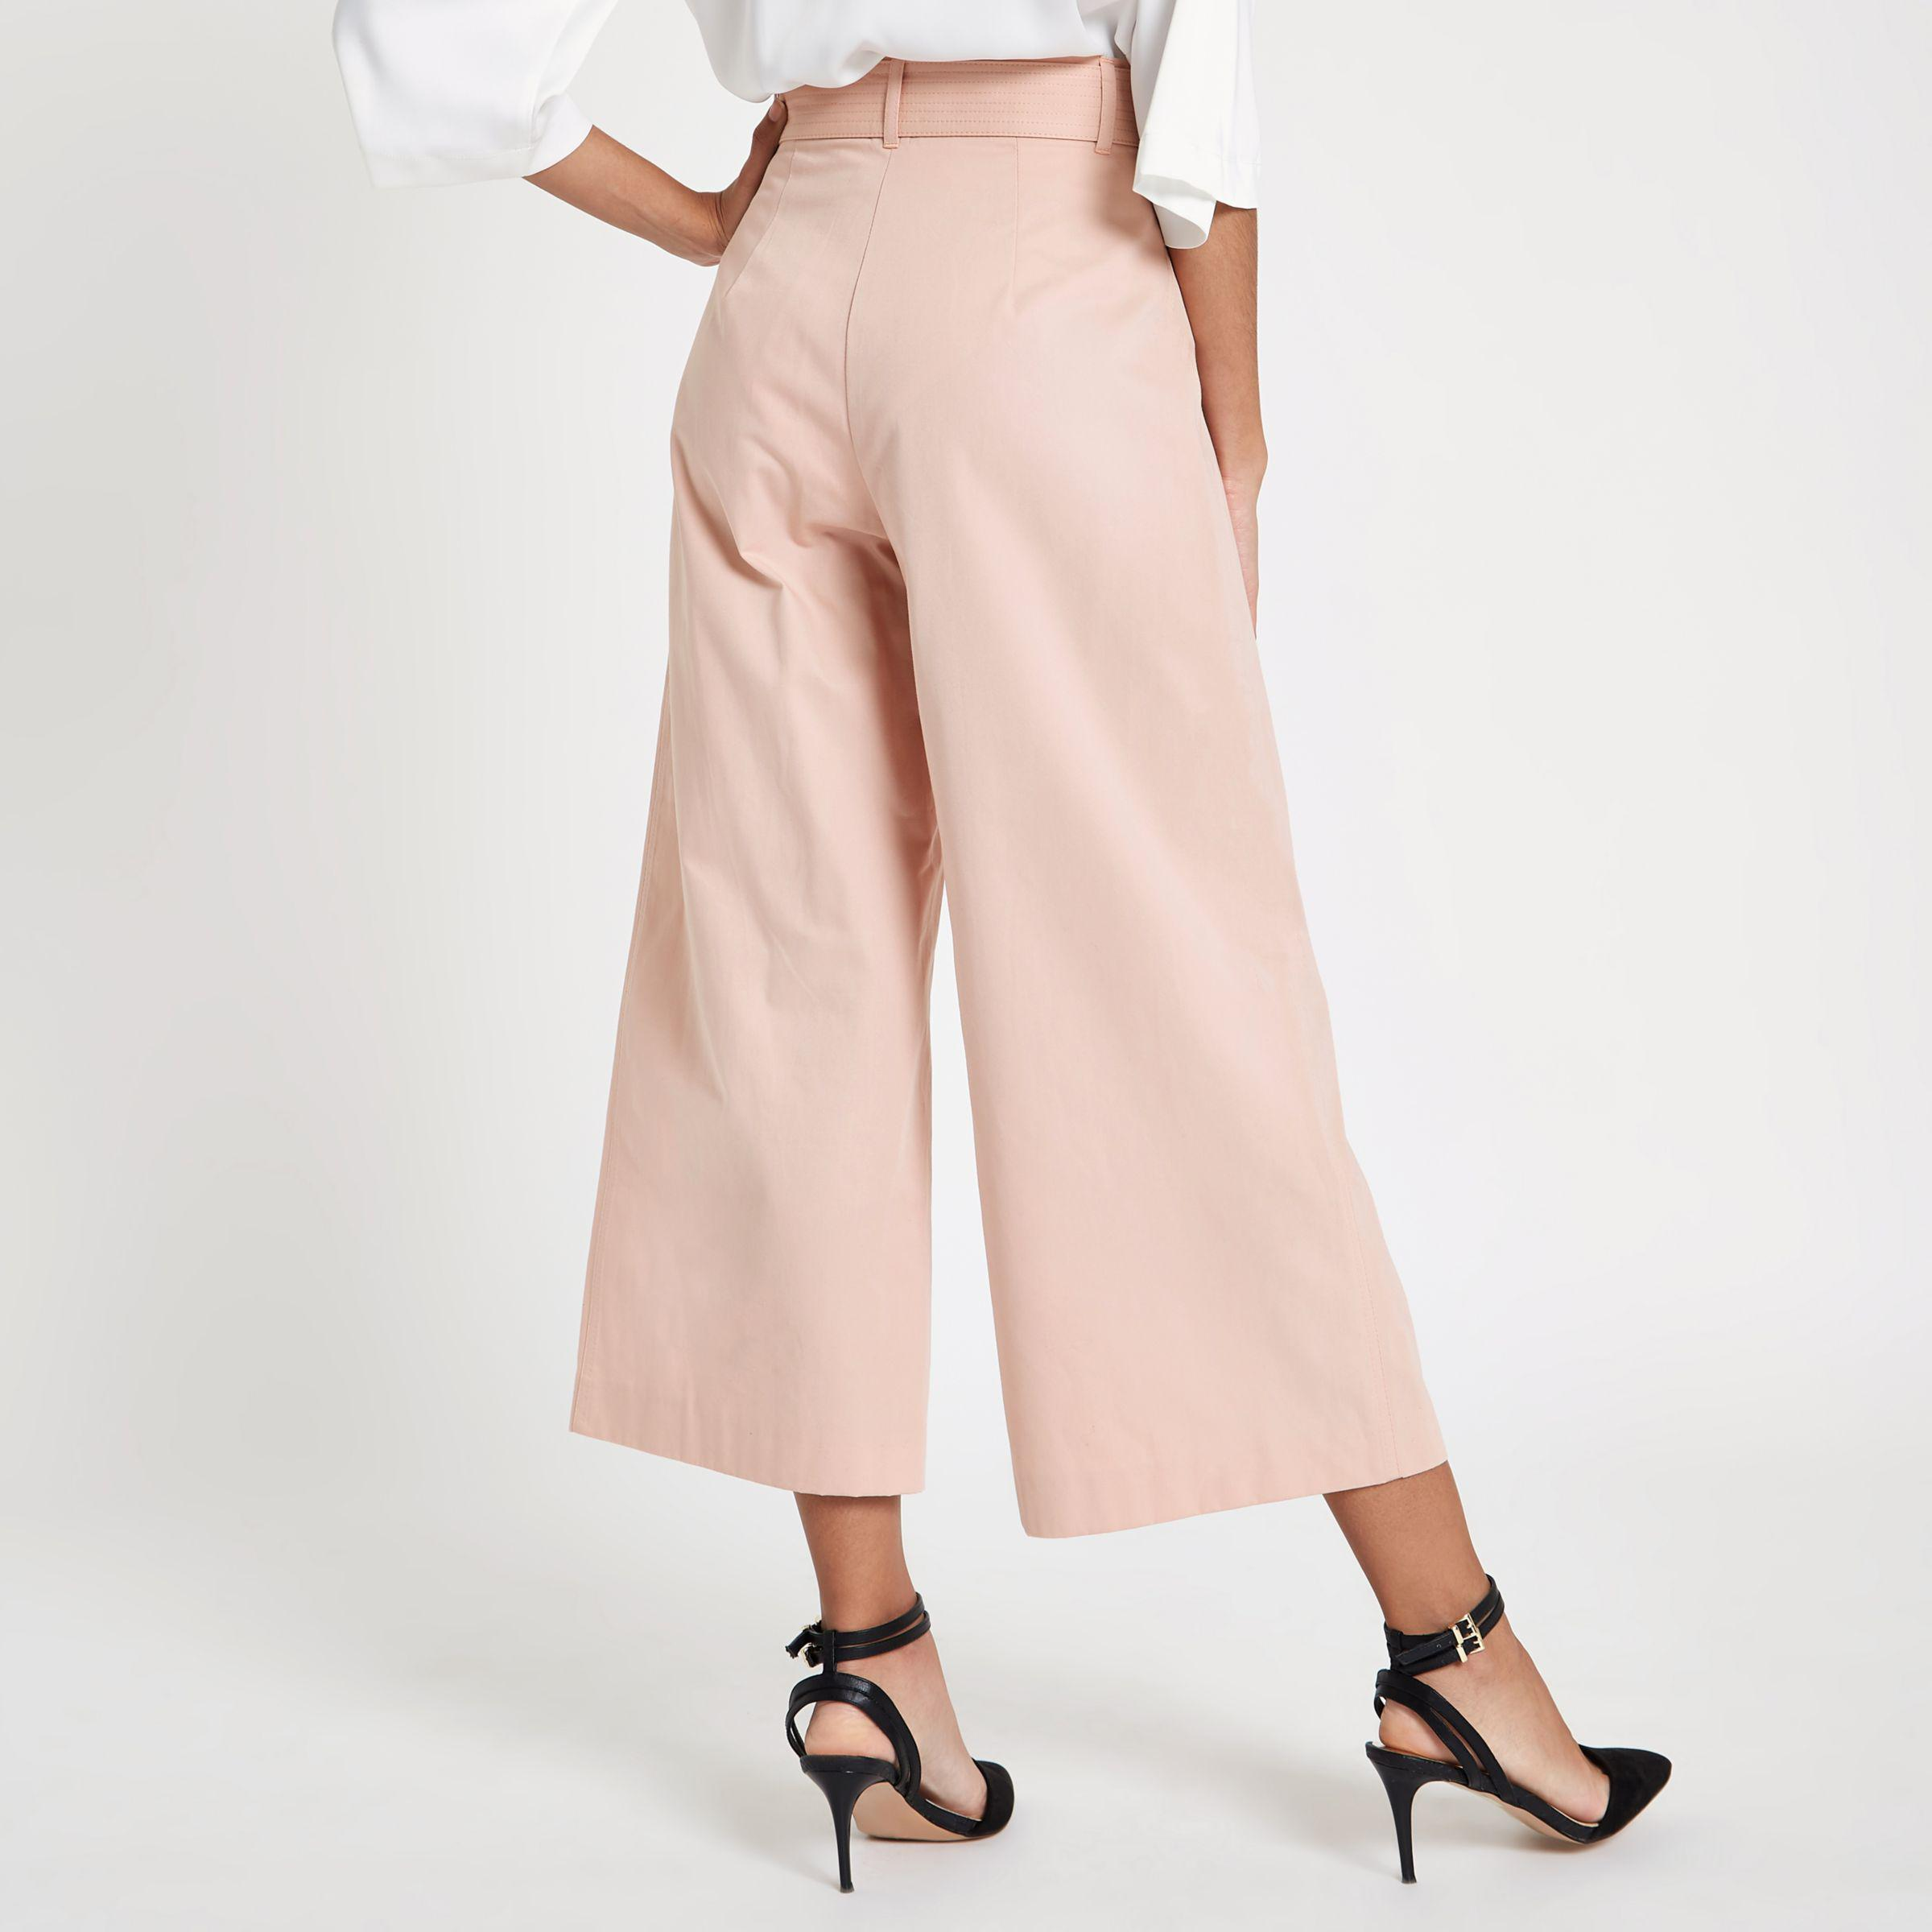 Cheap Sale Many Kinds Of Deals Cheap Online Womens Light Pink contrast stitch belted culott River Island Free Shipping Professional dKirf6E85